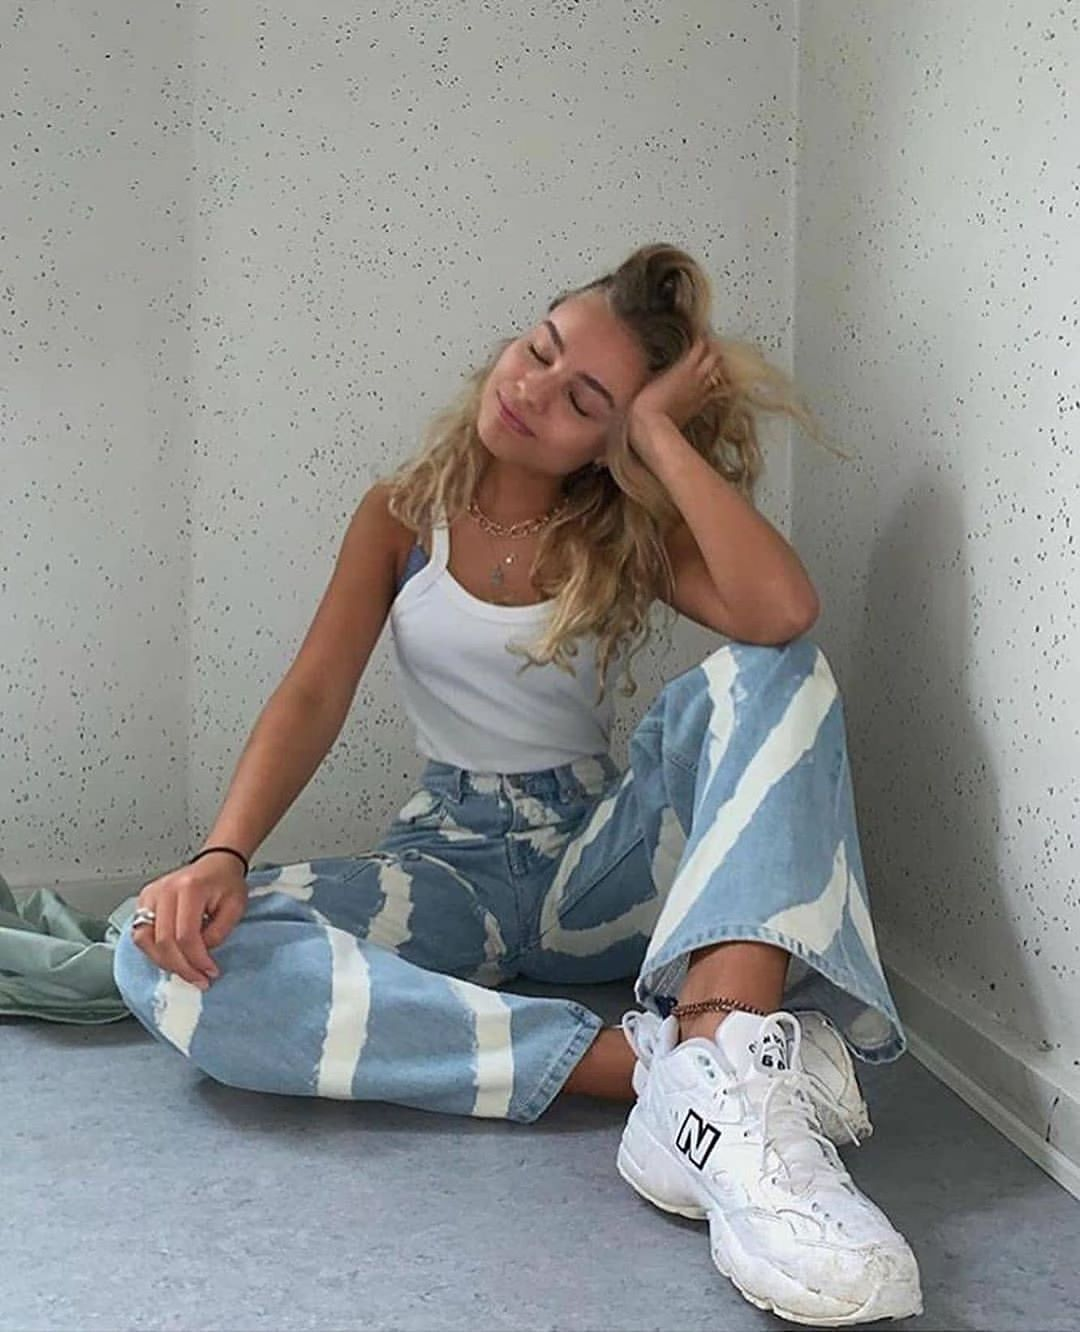 """Photo of Womenswear Streetwear on Instagram: """"What do you think of those jeans?"""" – Michele's Blog"""